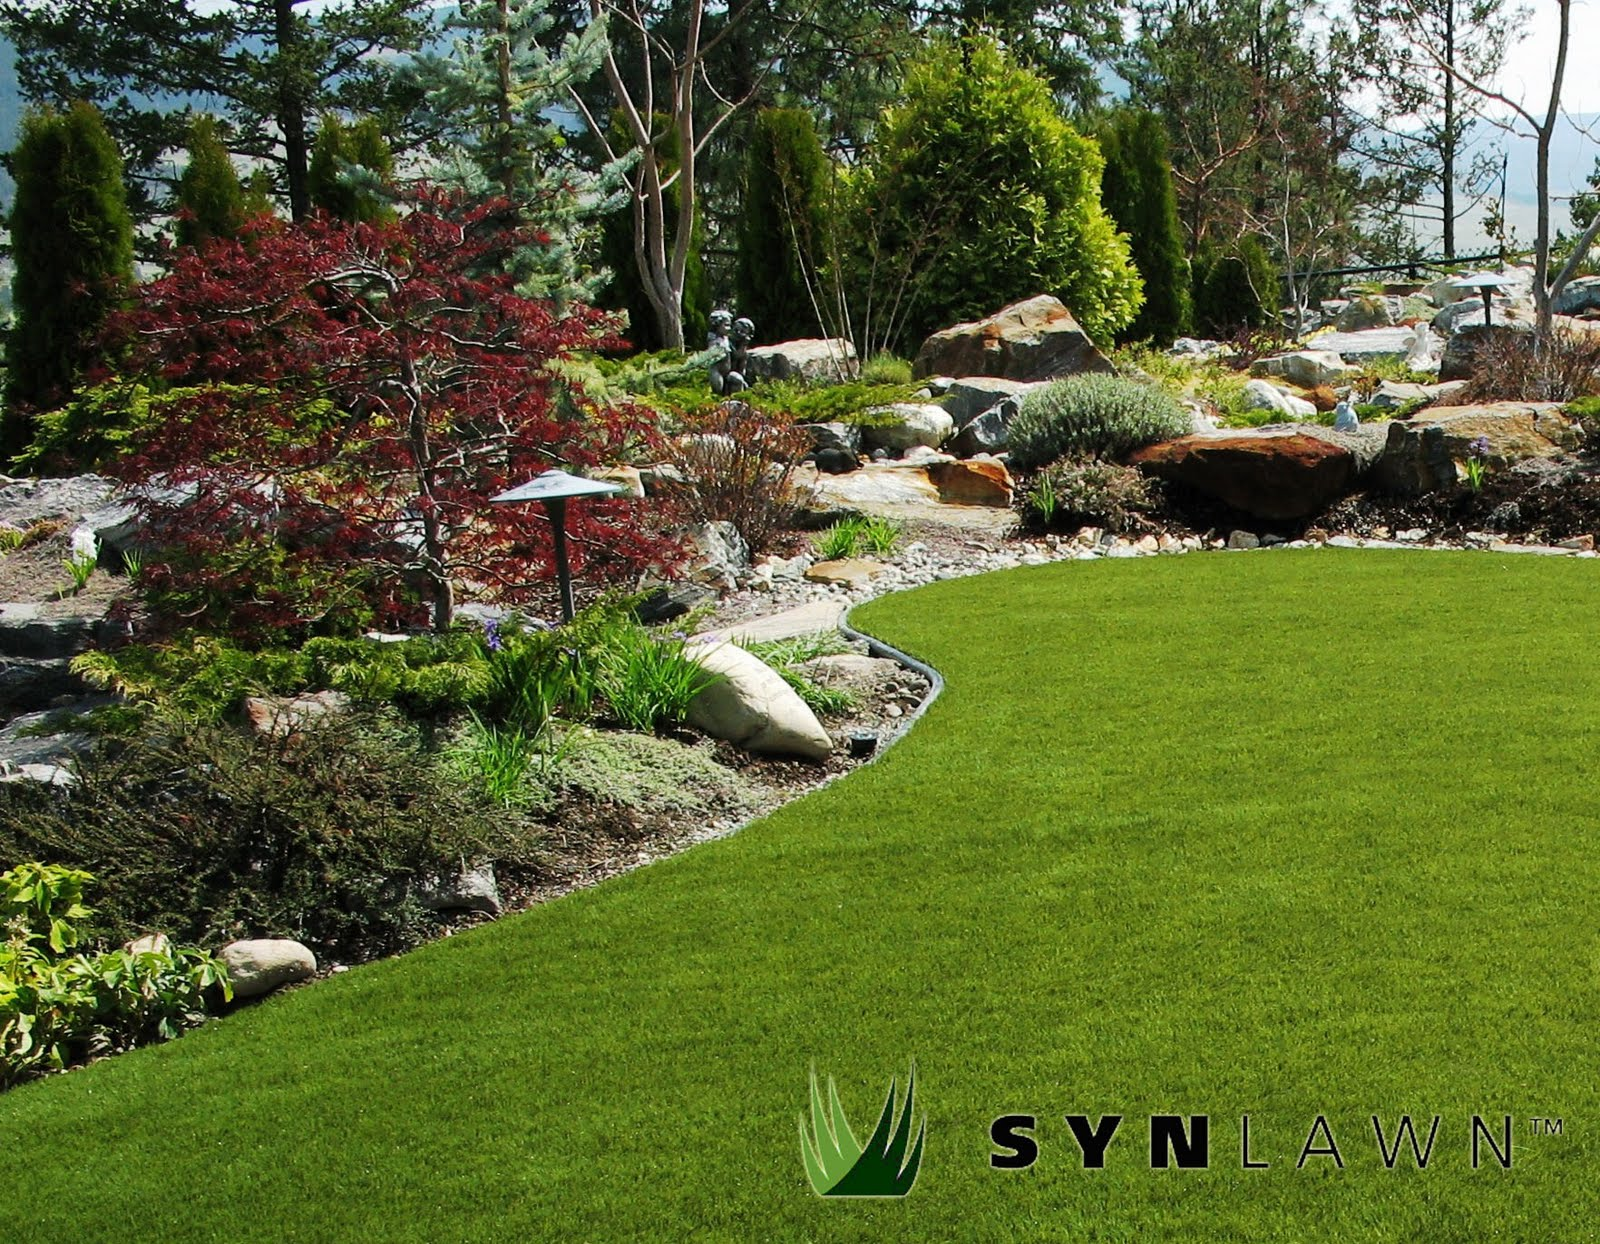 synlawn okanagan save water with synlawn